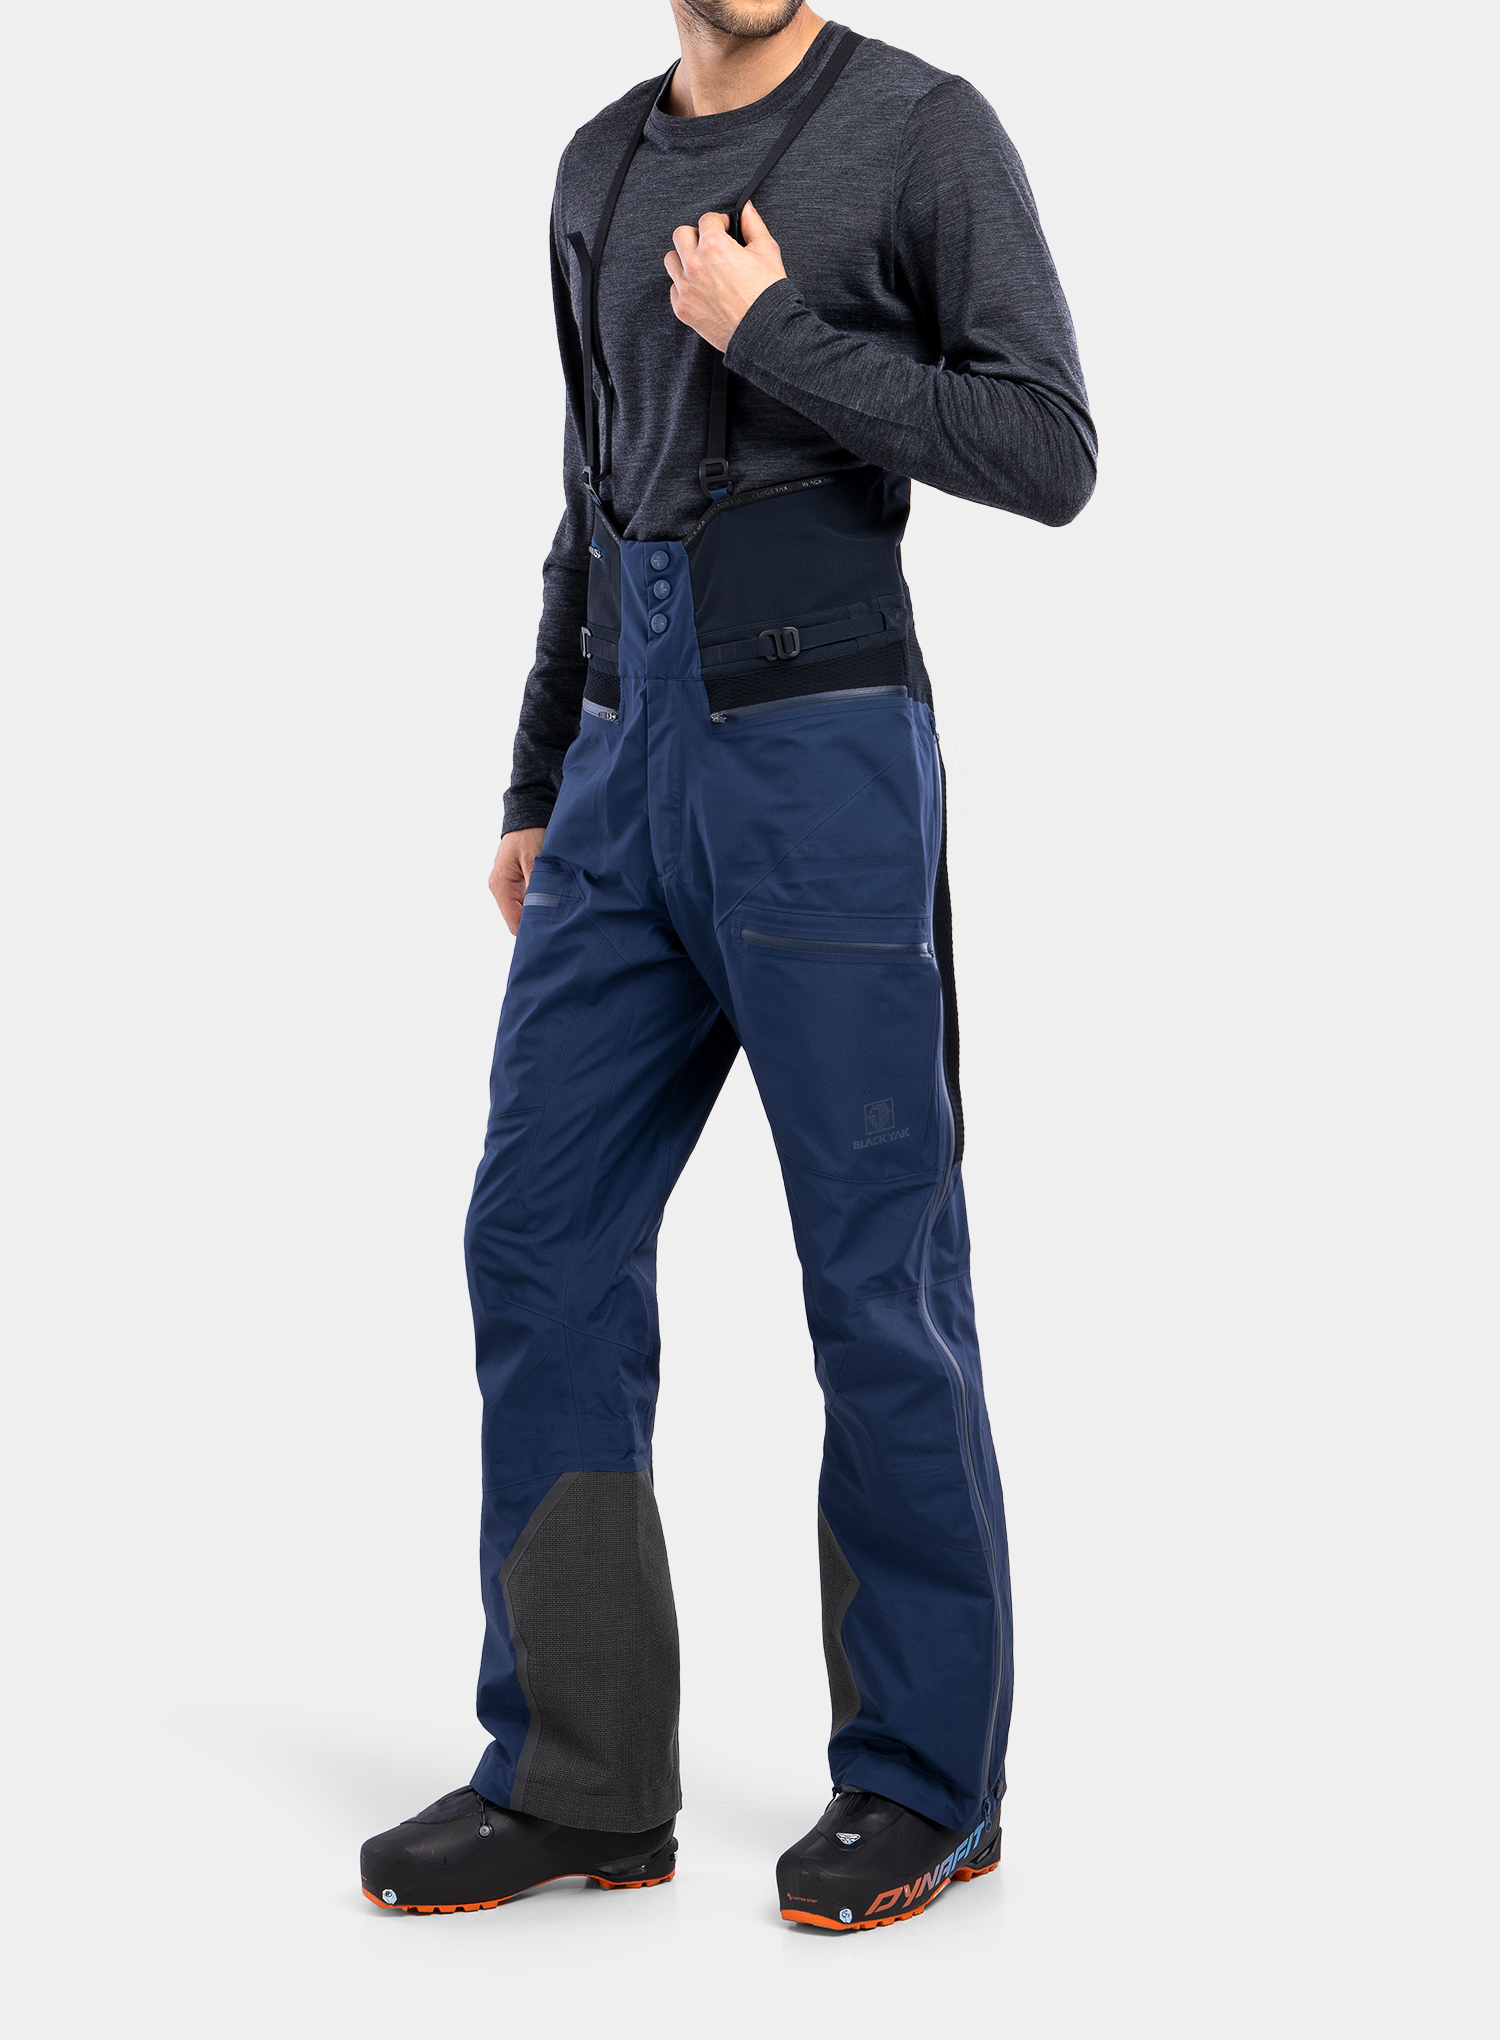 Spodnie GORE-TEX BlackYak Brangus Pants - dress blues - zdjęcie nr. 4